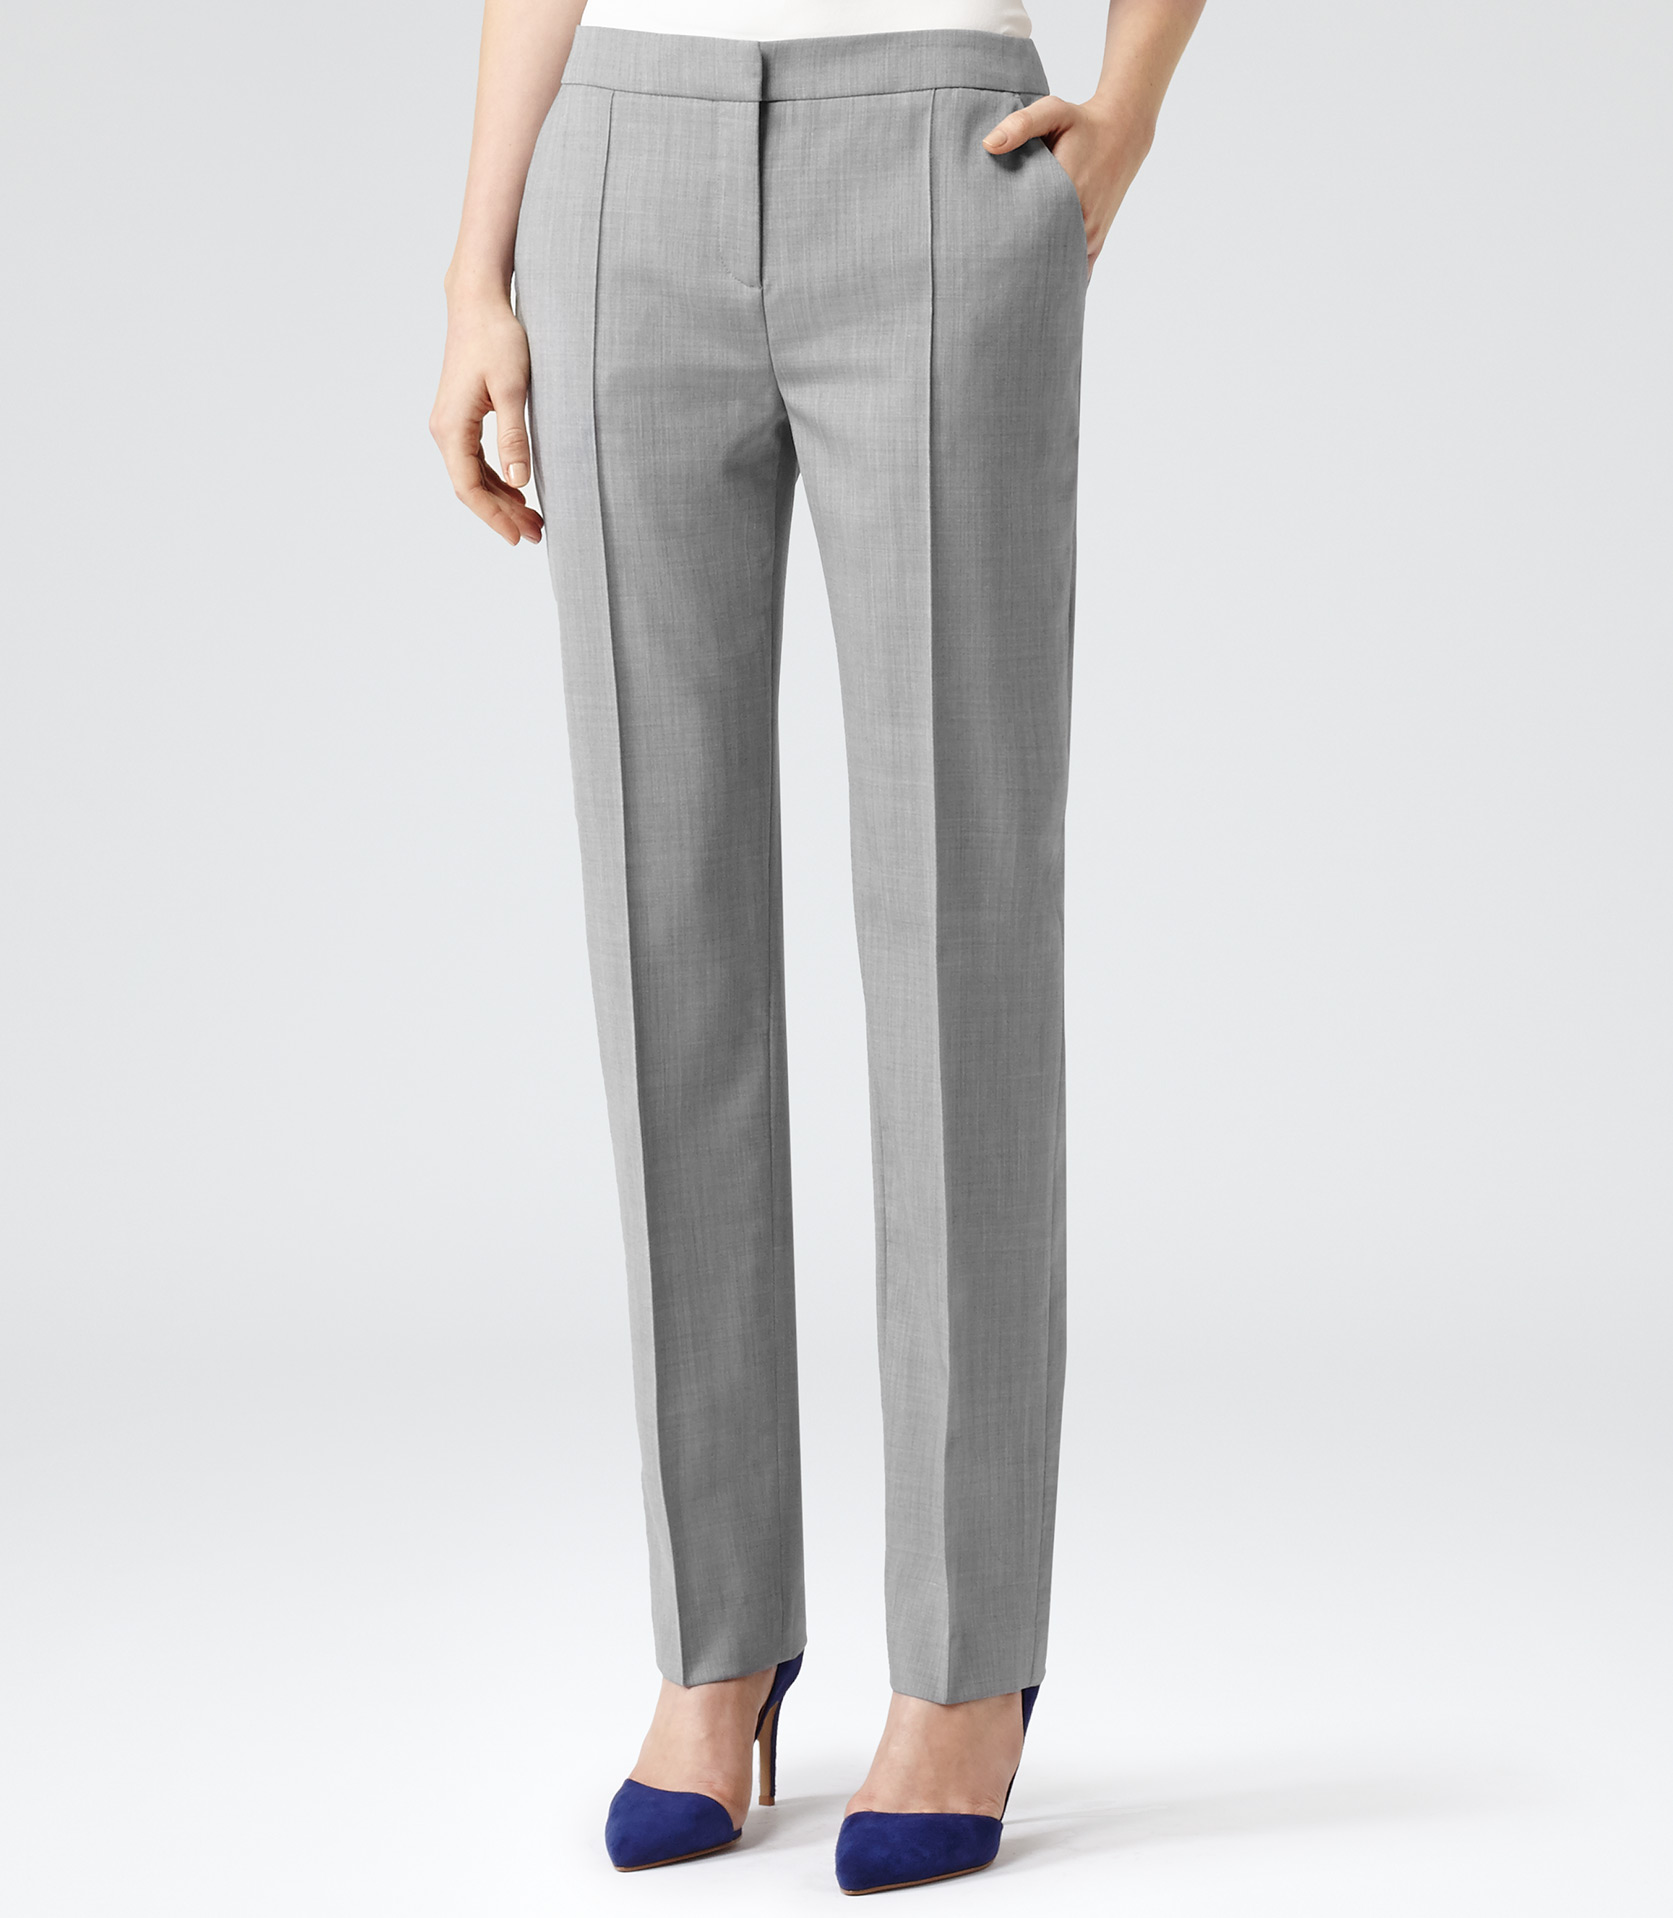 Simple Grey Dress Pants For Women For Pinterest